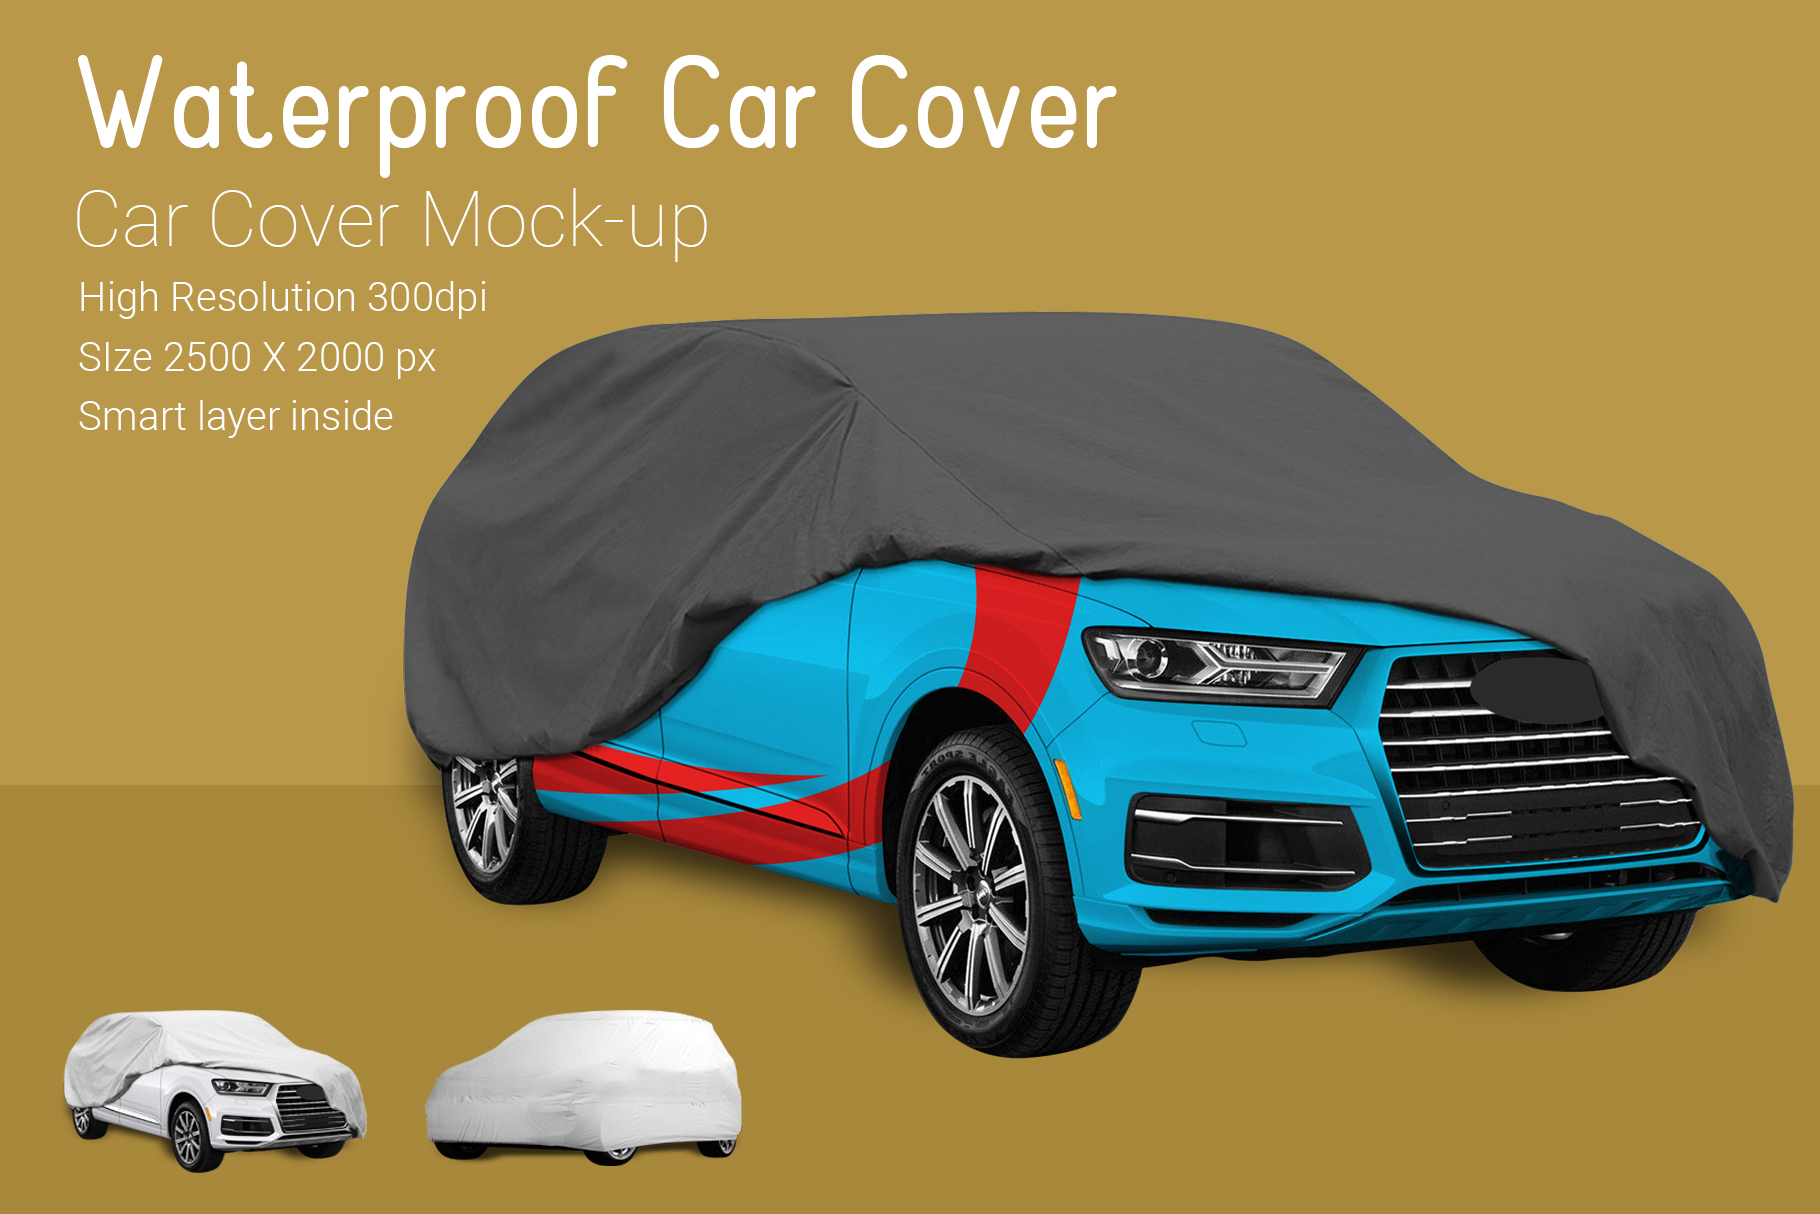 Car Cover Mock-Up example image 2